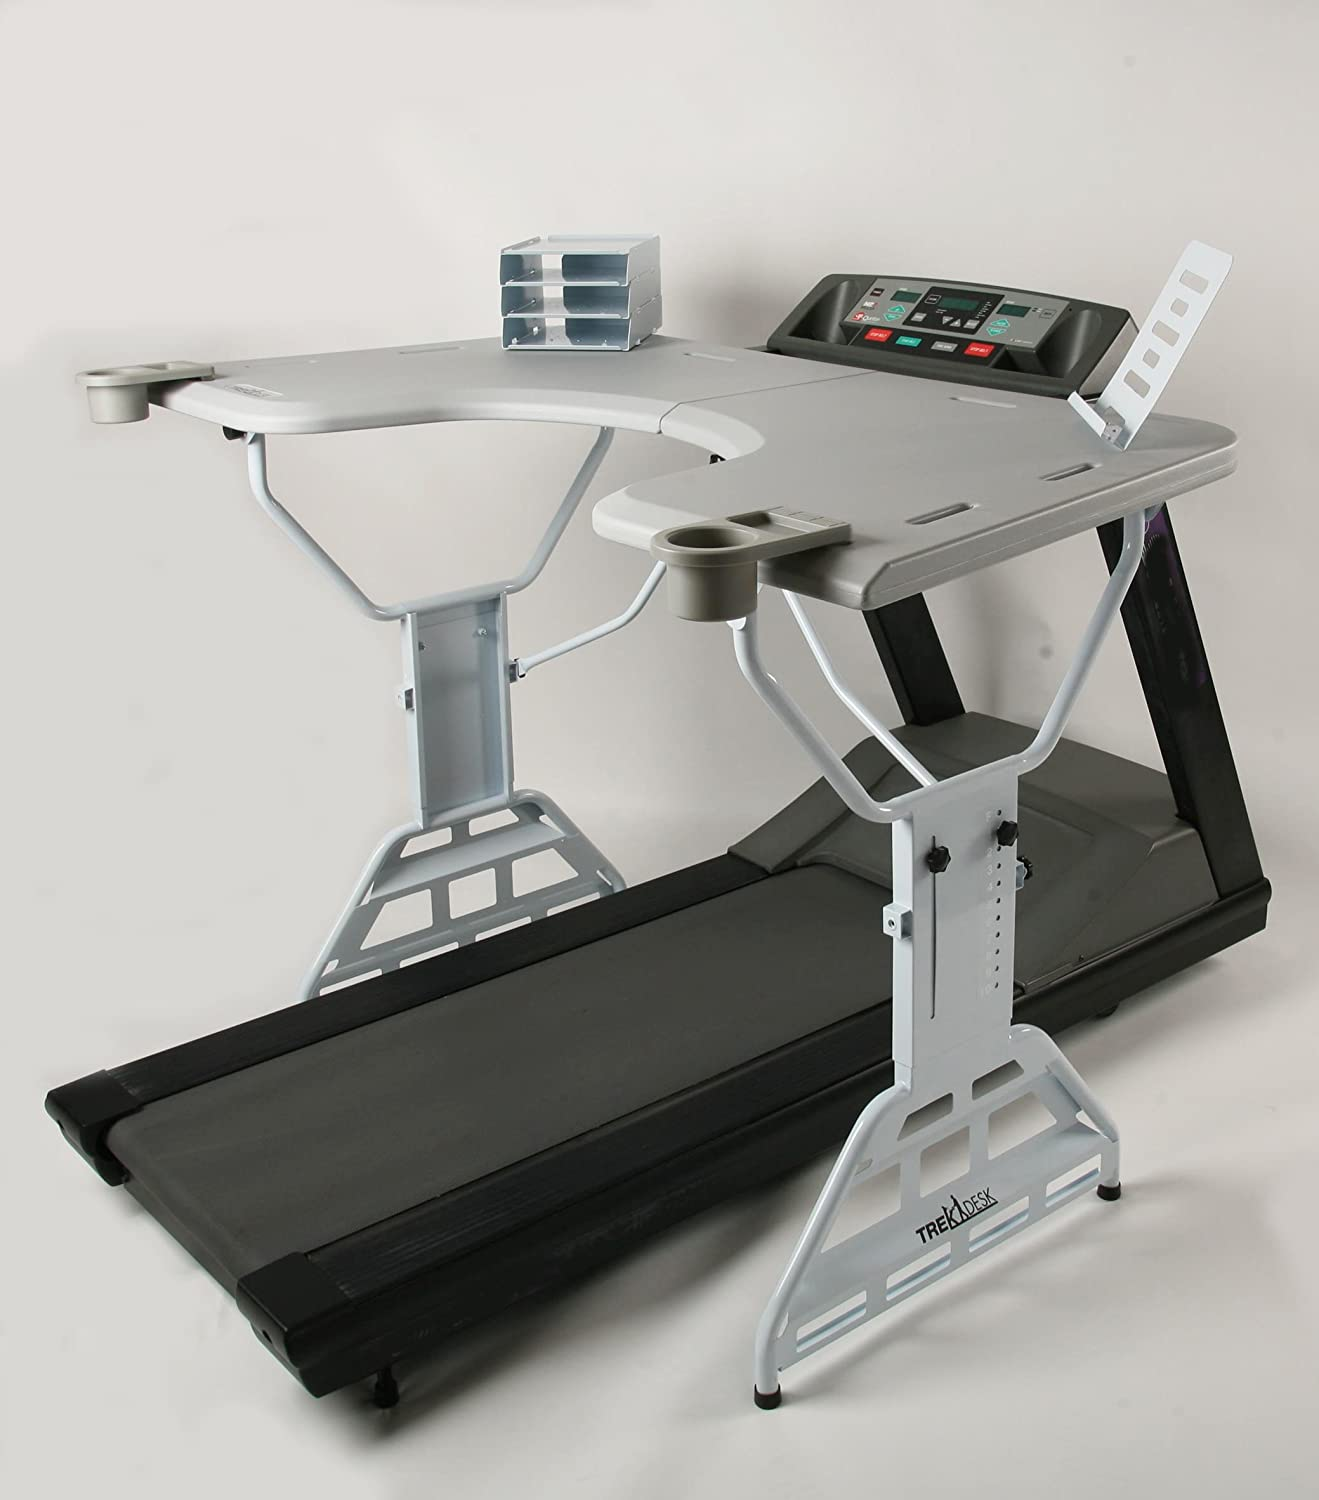 Amazon.com : TrekDesk Treadmill Desk   Walking And Standing Desk For  Treadmill   Perfect Treadmill Workstation : Exercise Treadmills : Sports U0026  Outdoors